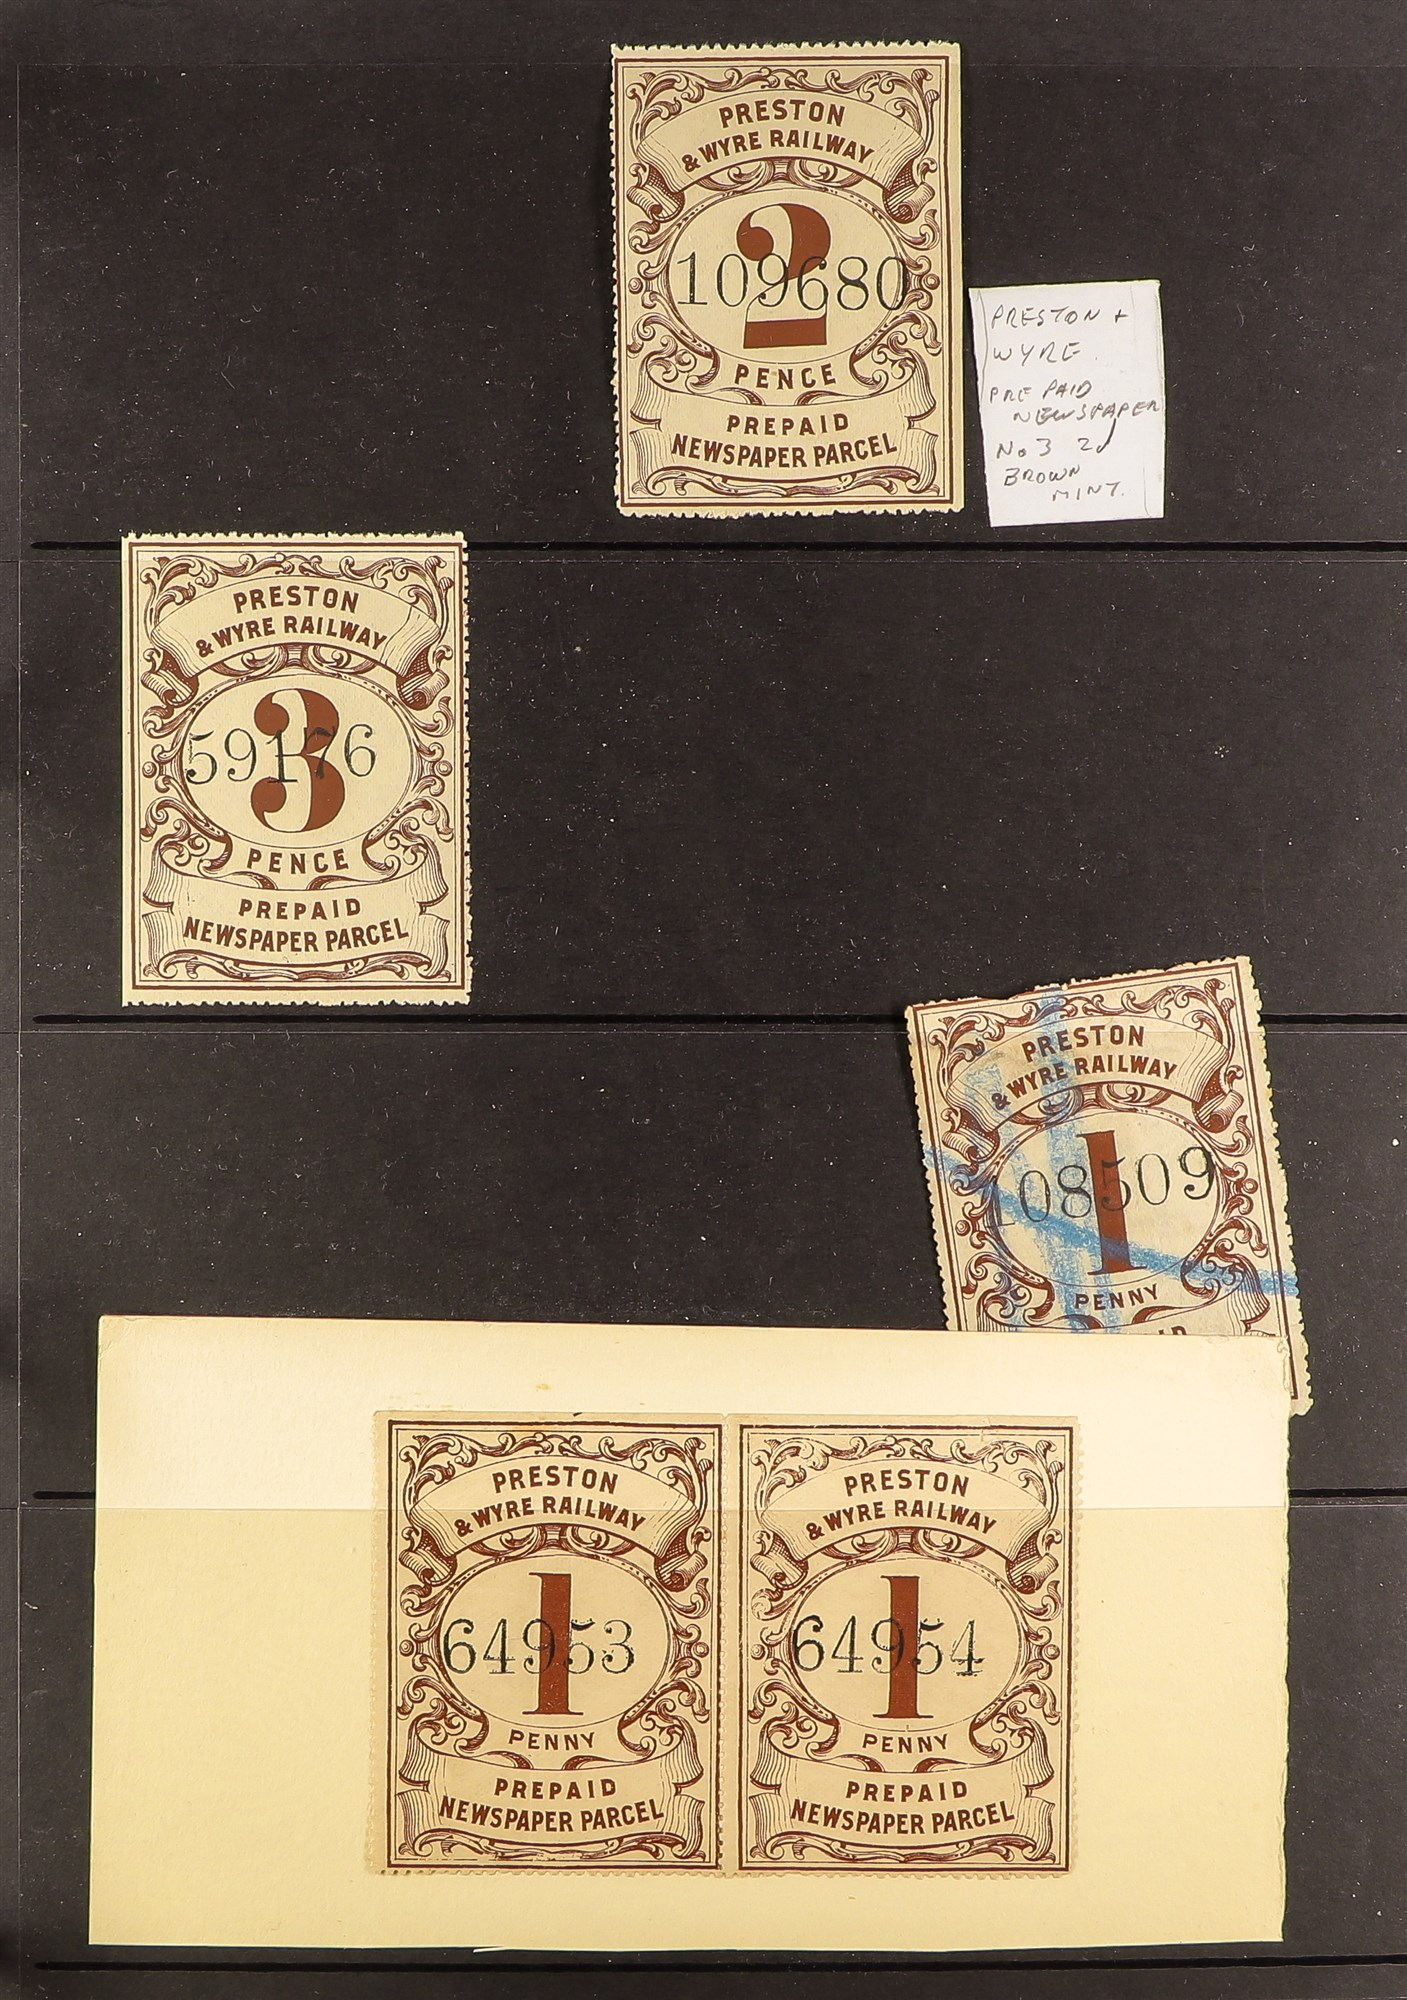 GREAT BRITAIN RAILWAY LETTER AND NEWSPAPER STAMPS 1890's-1940's COLLECTION in two albums, mint and - Image 21 of 24